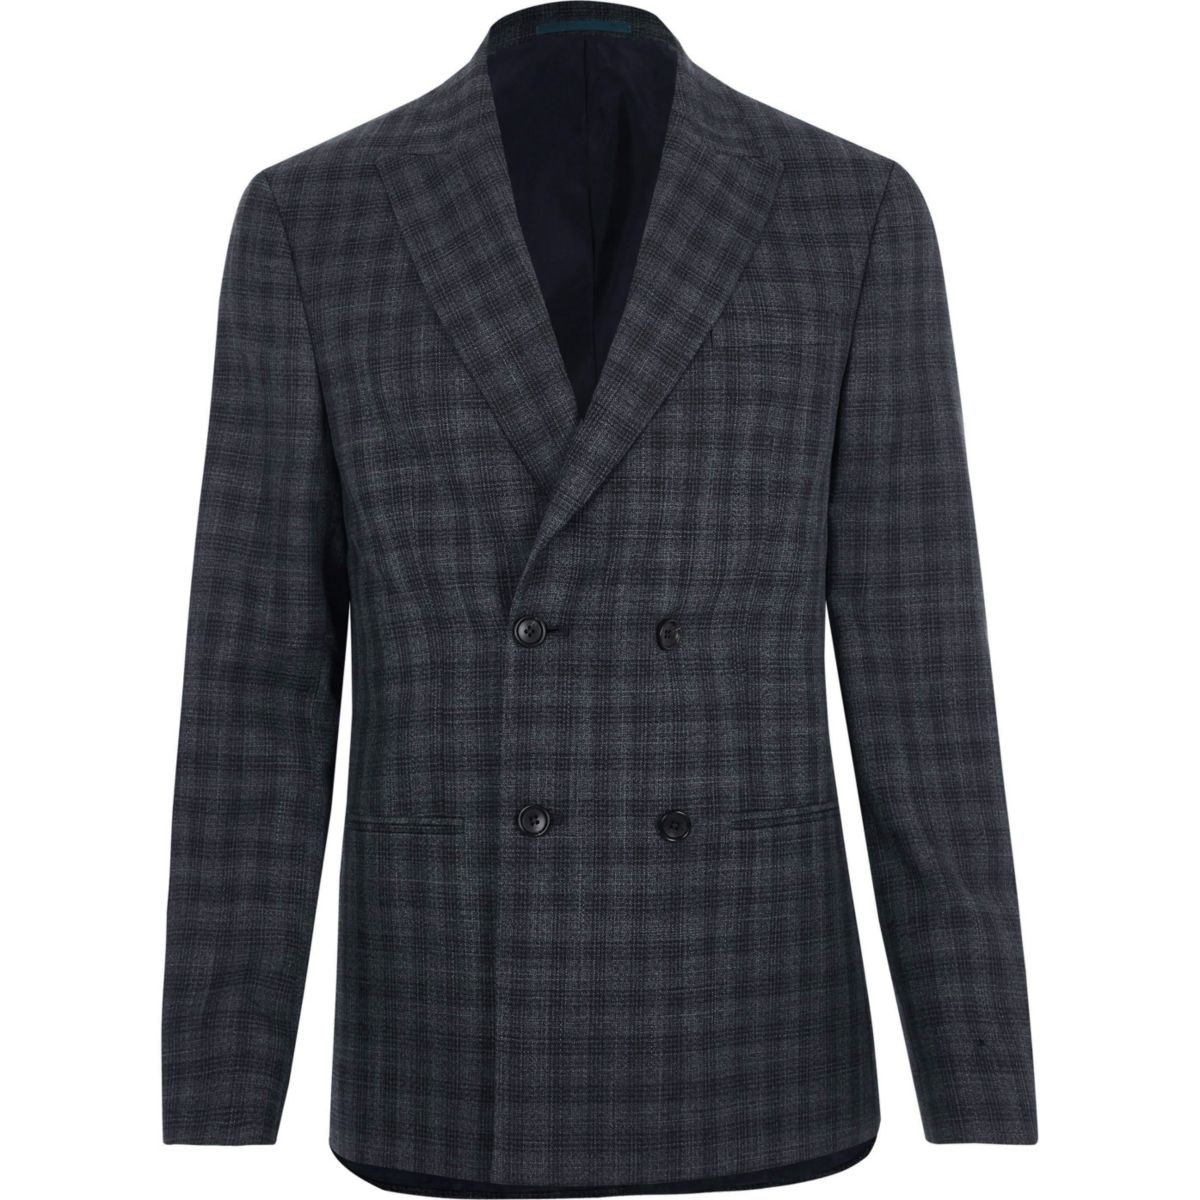 Grey shadow check double breasted suit jacket - Suit Jackets ...